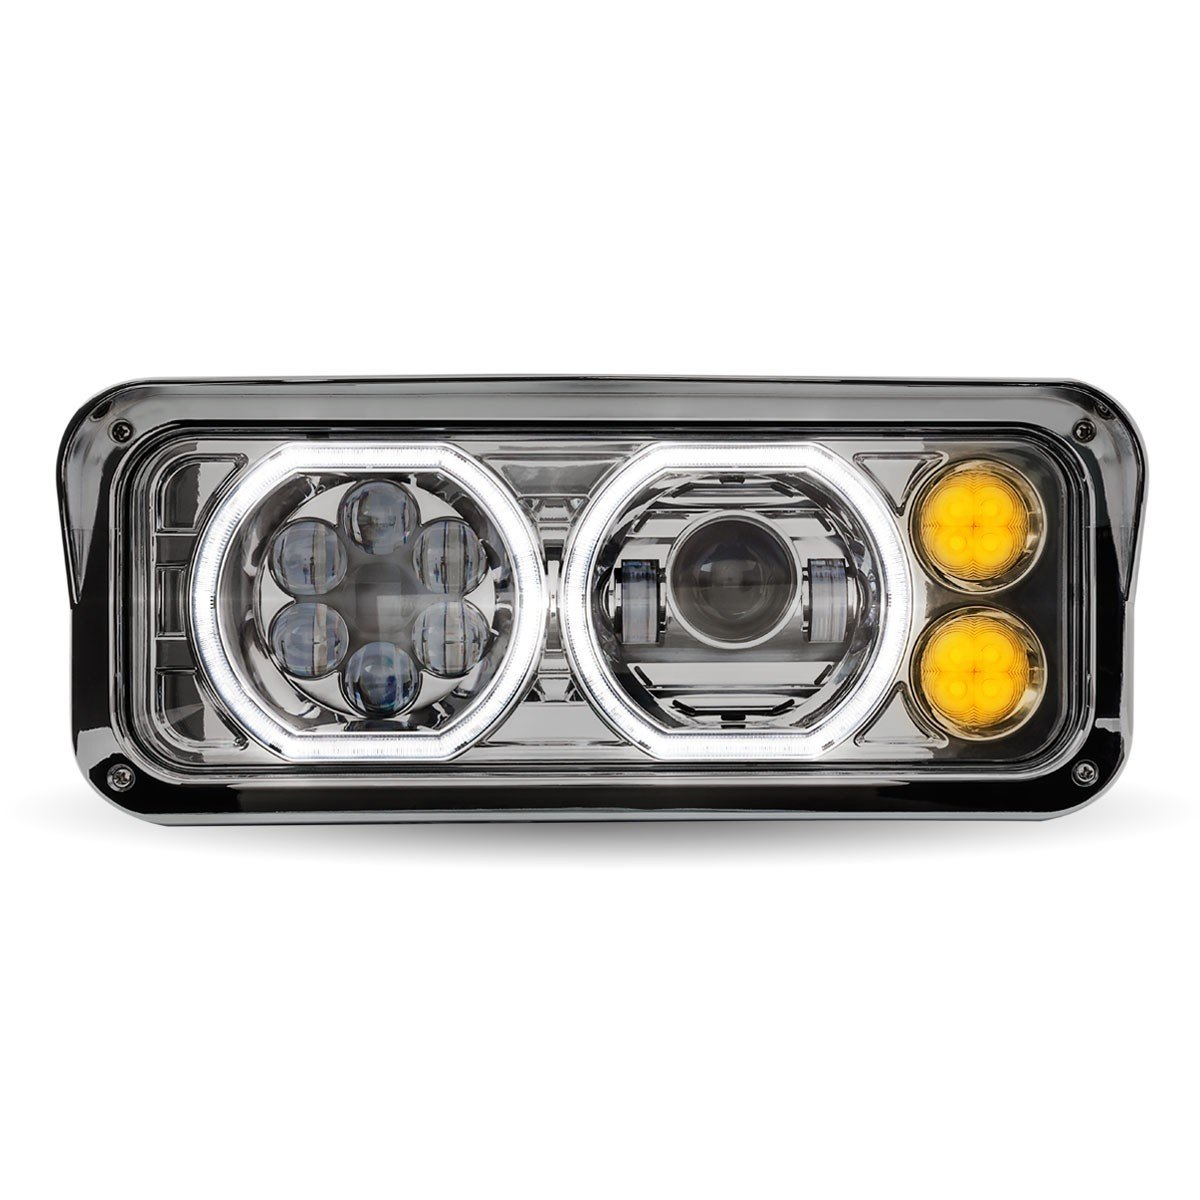 LED Projector Headlight Assembly TLED-H100